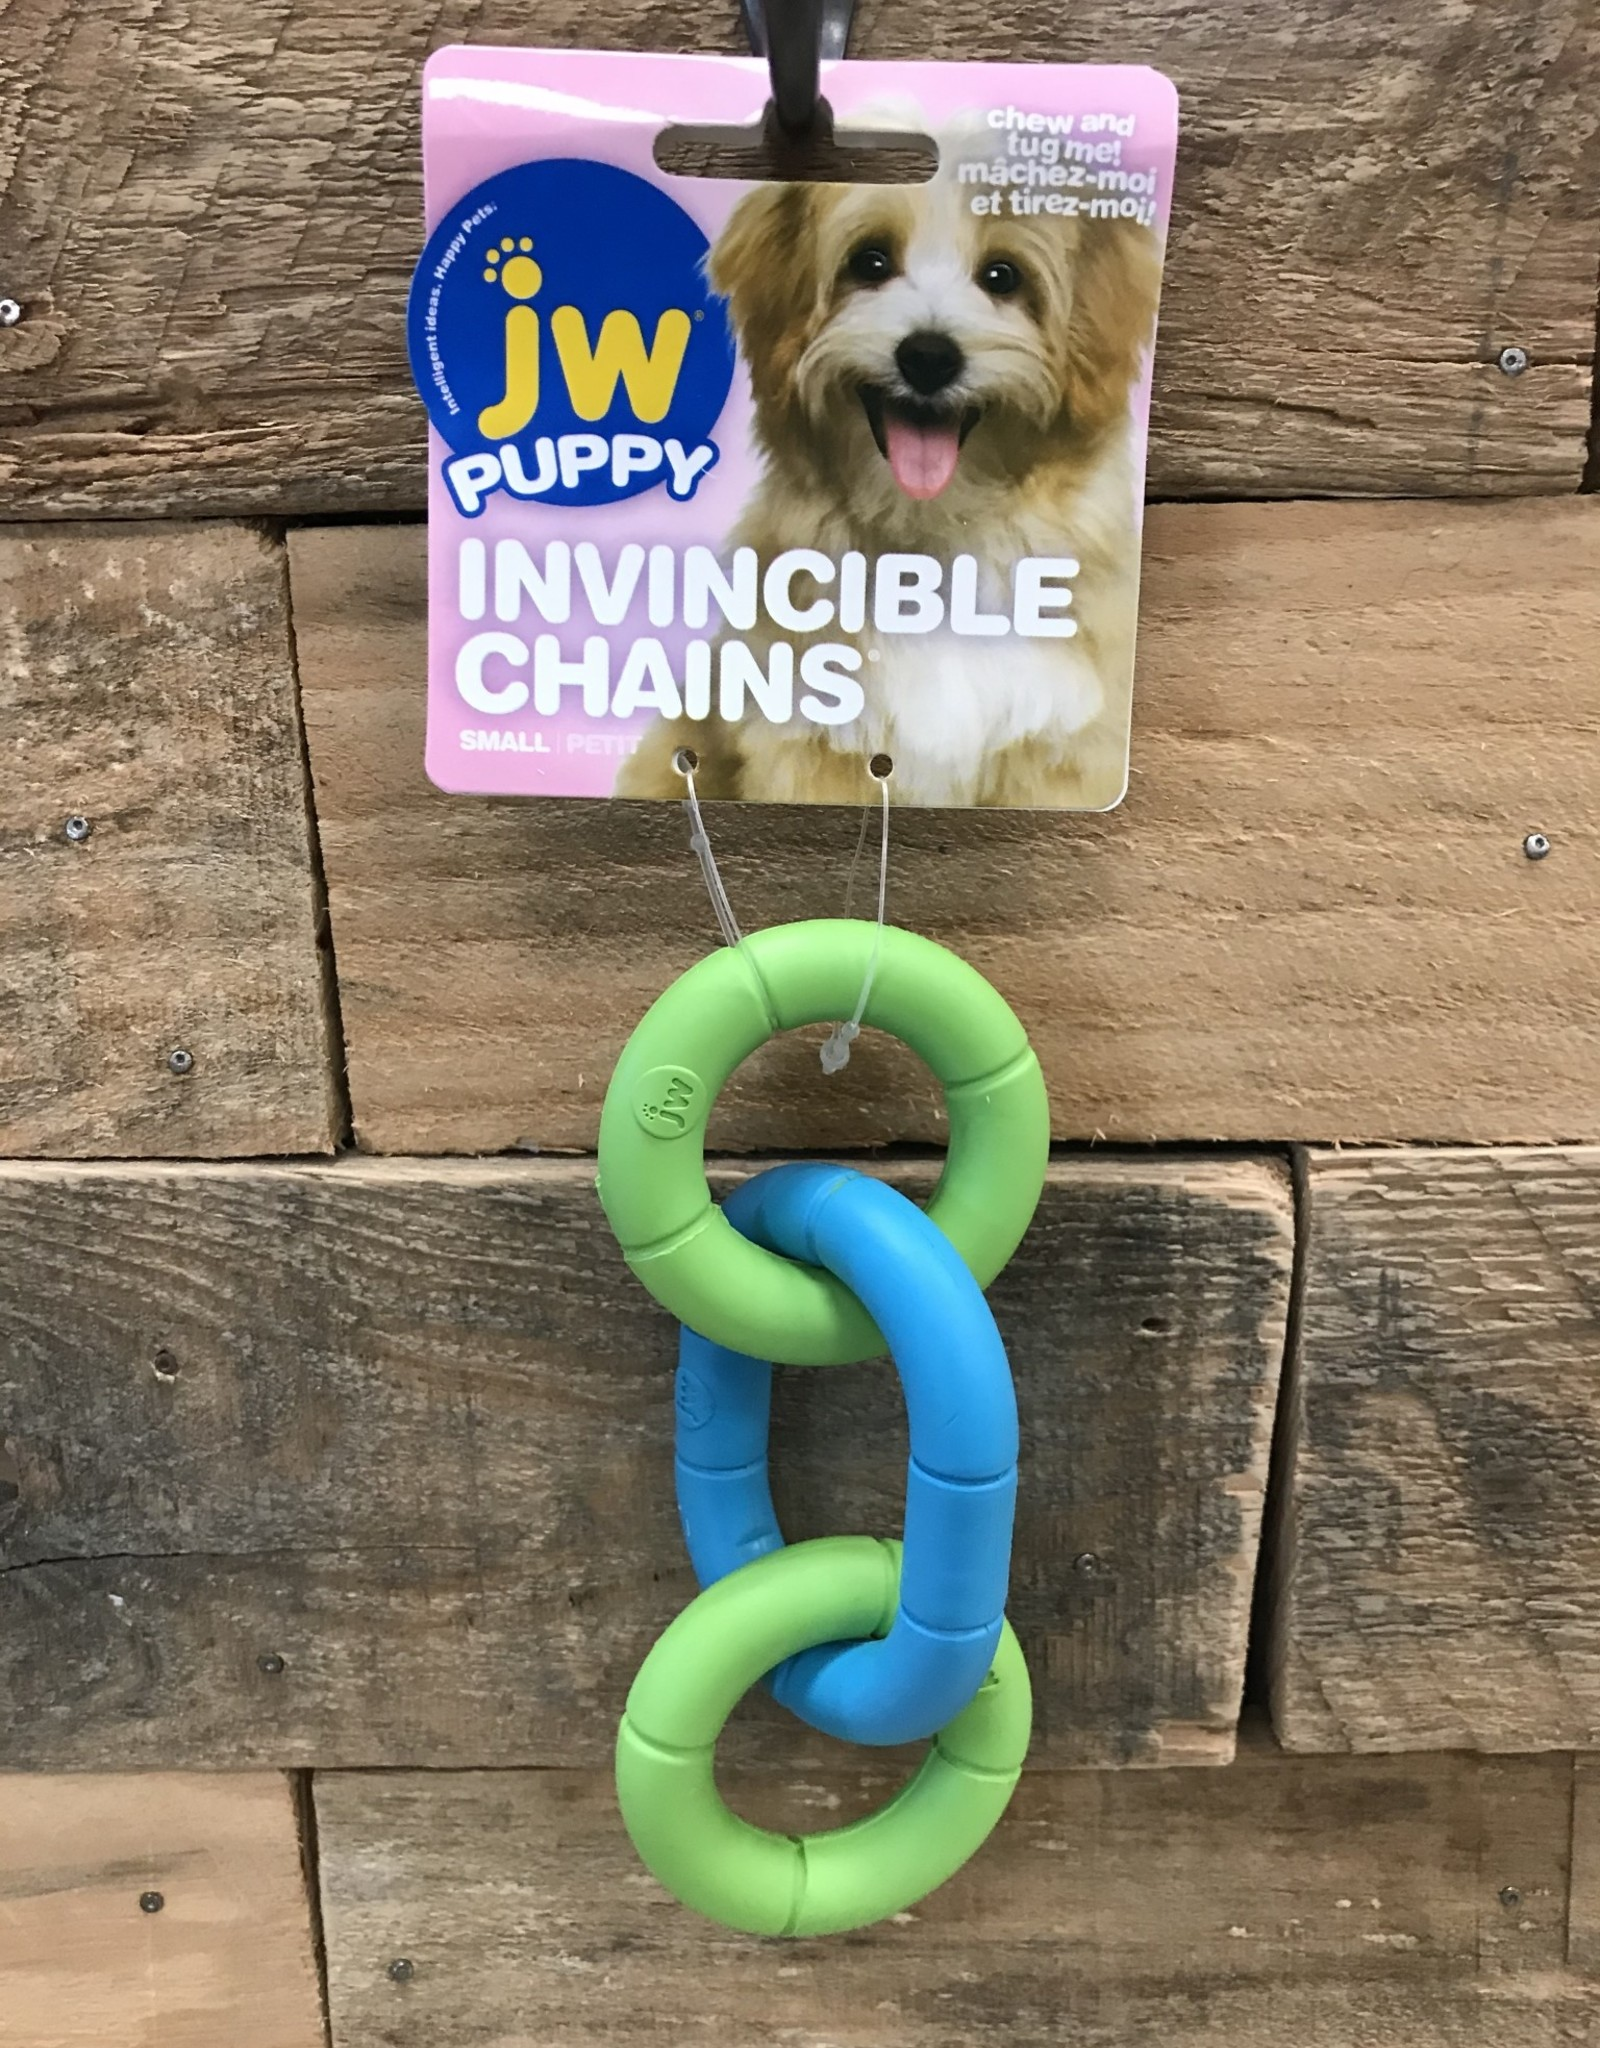 JW JW Puppy Invincible Chains Small Assorted